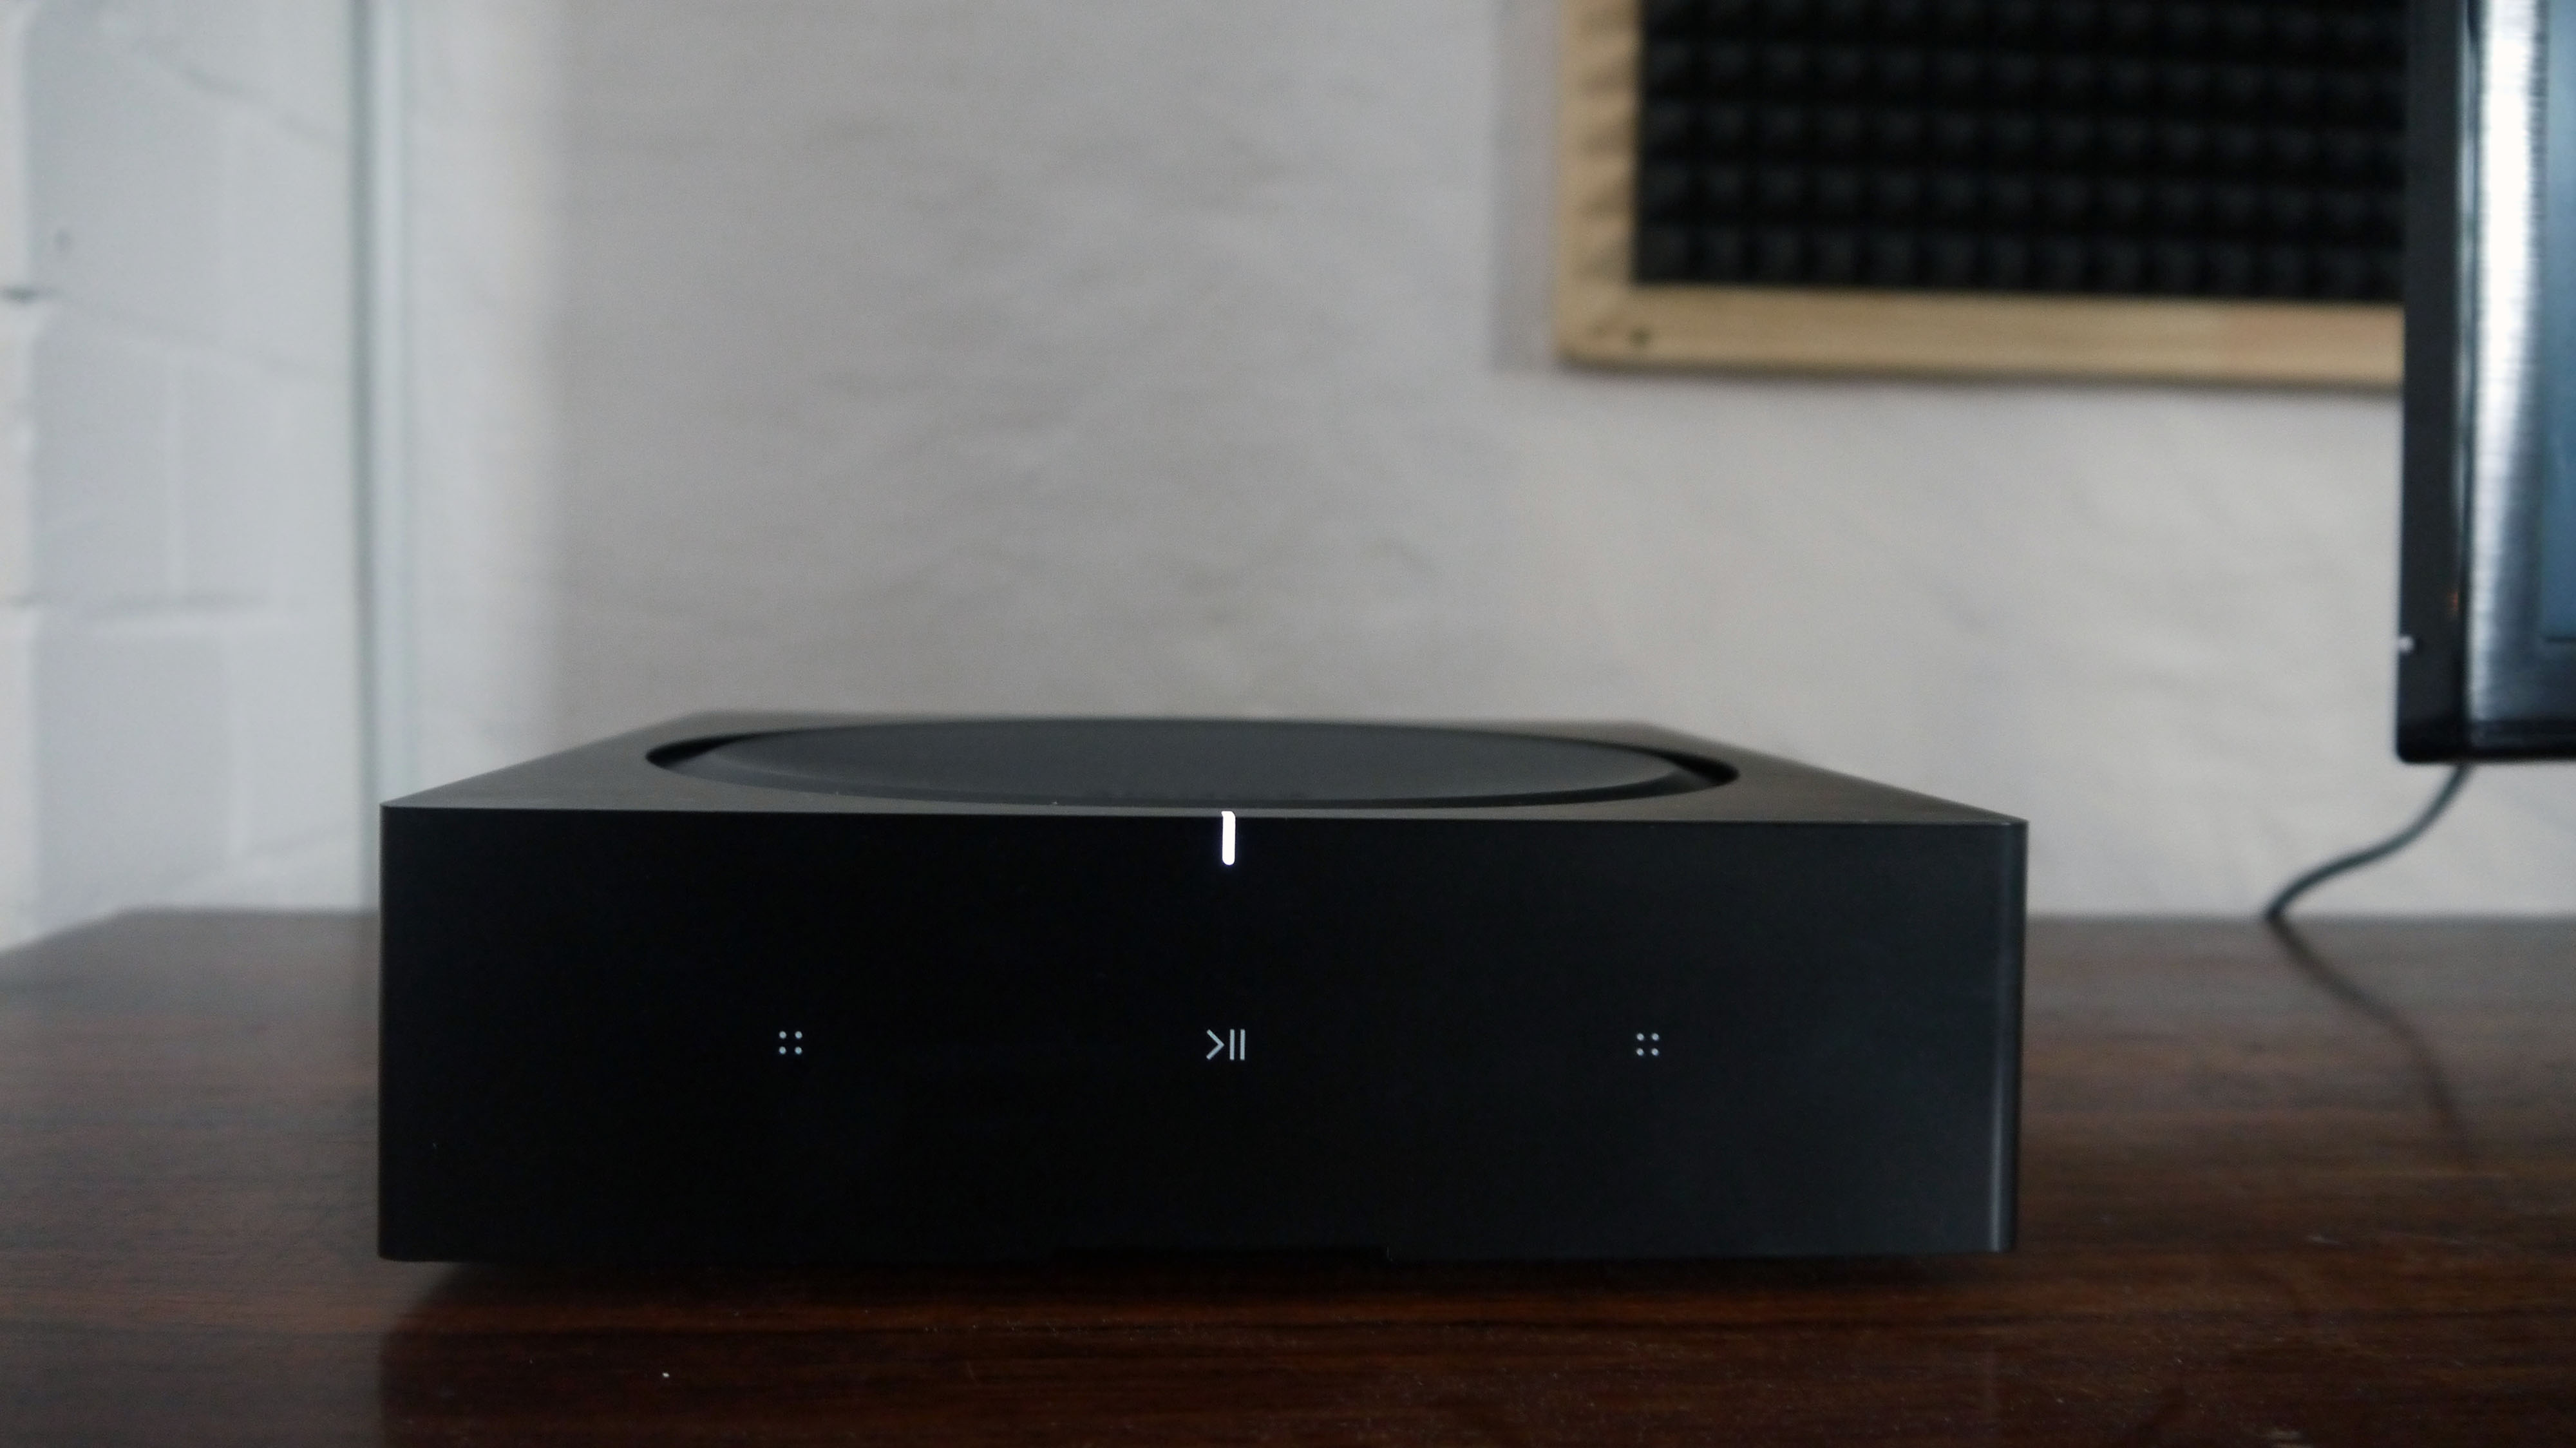 First look: Sonos Amp